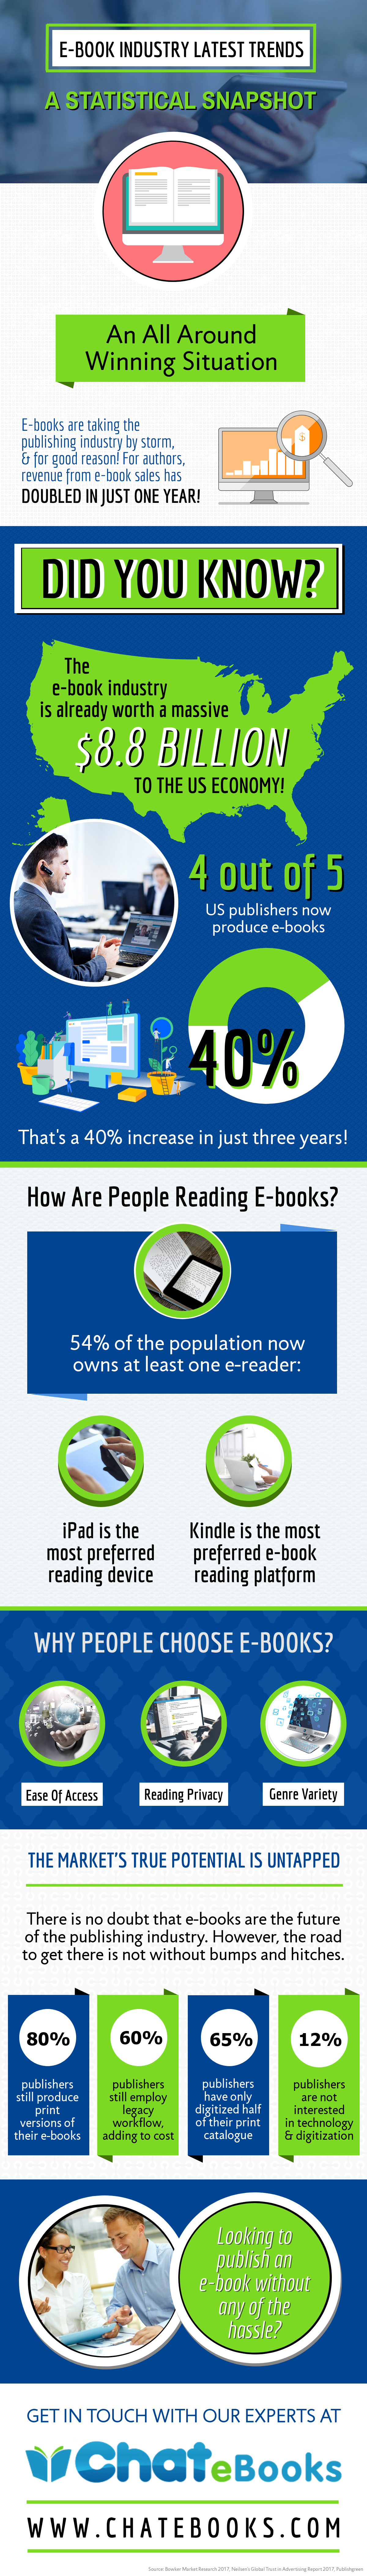 A Statistical Snapshot Of E-Book Industry Latest Trends - Chatebooks-6726